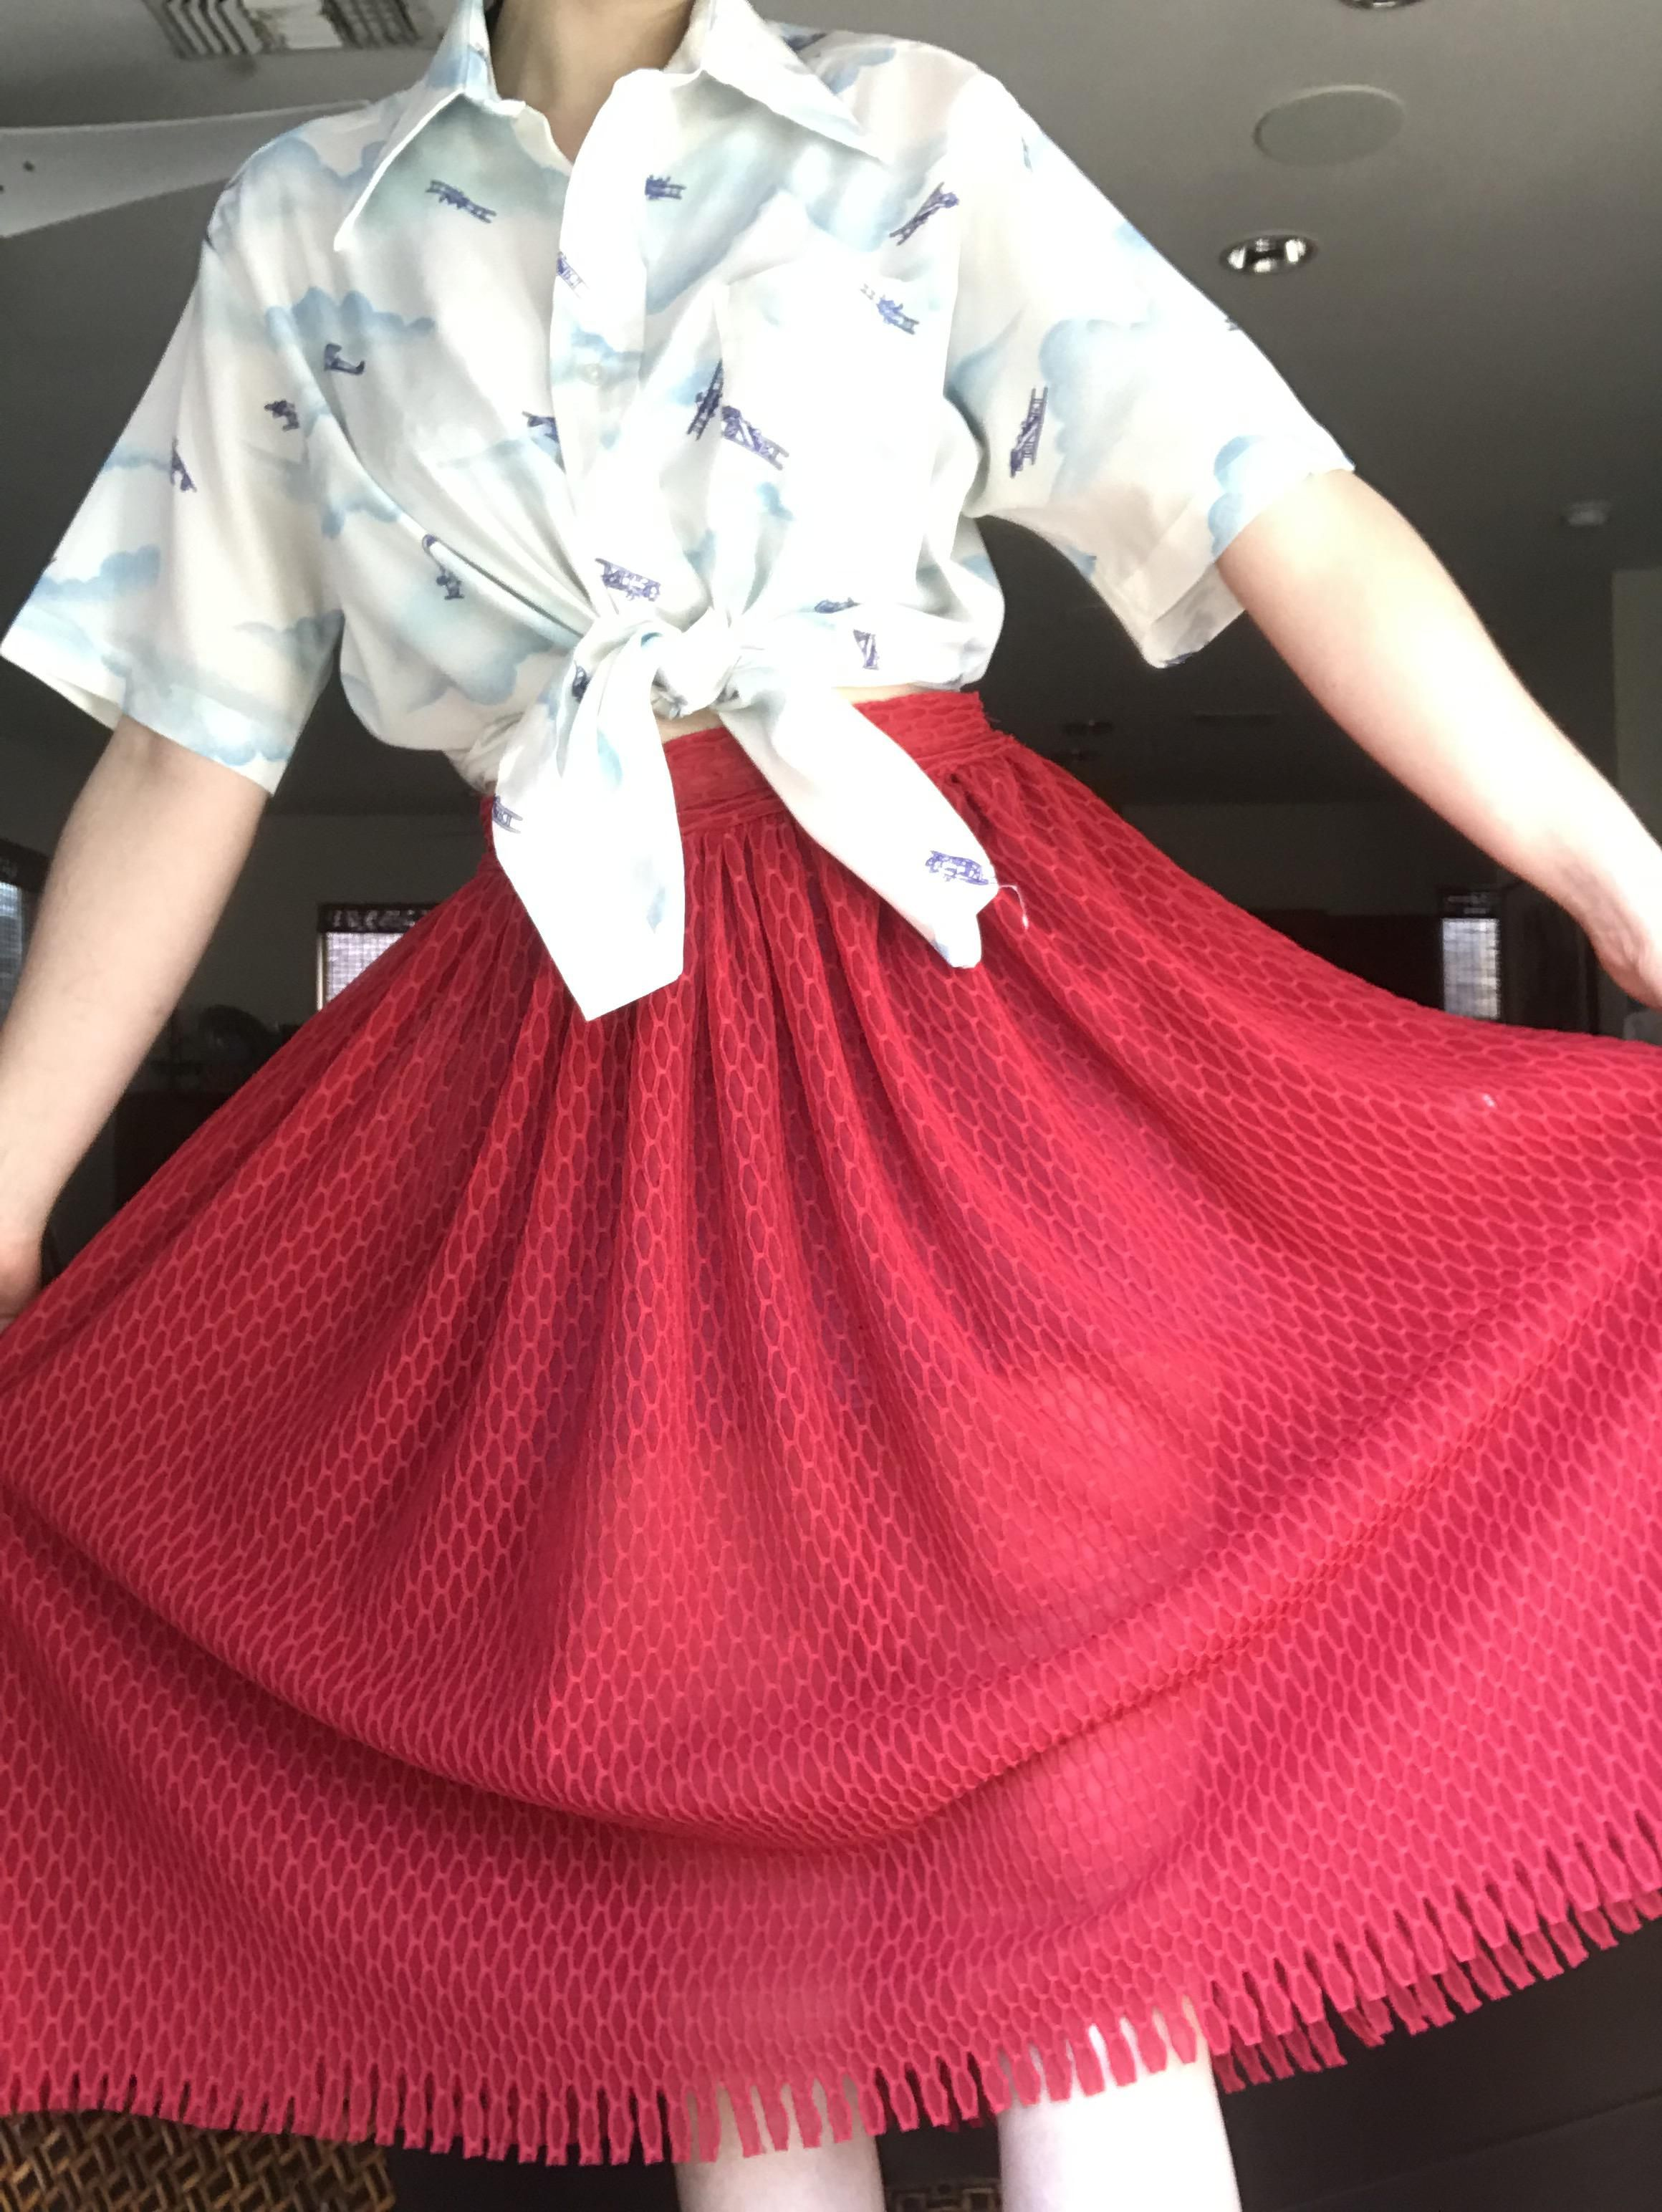 Designed and made this skirt. Im going to make a matching crop top too :)